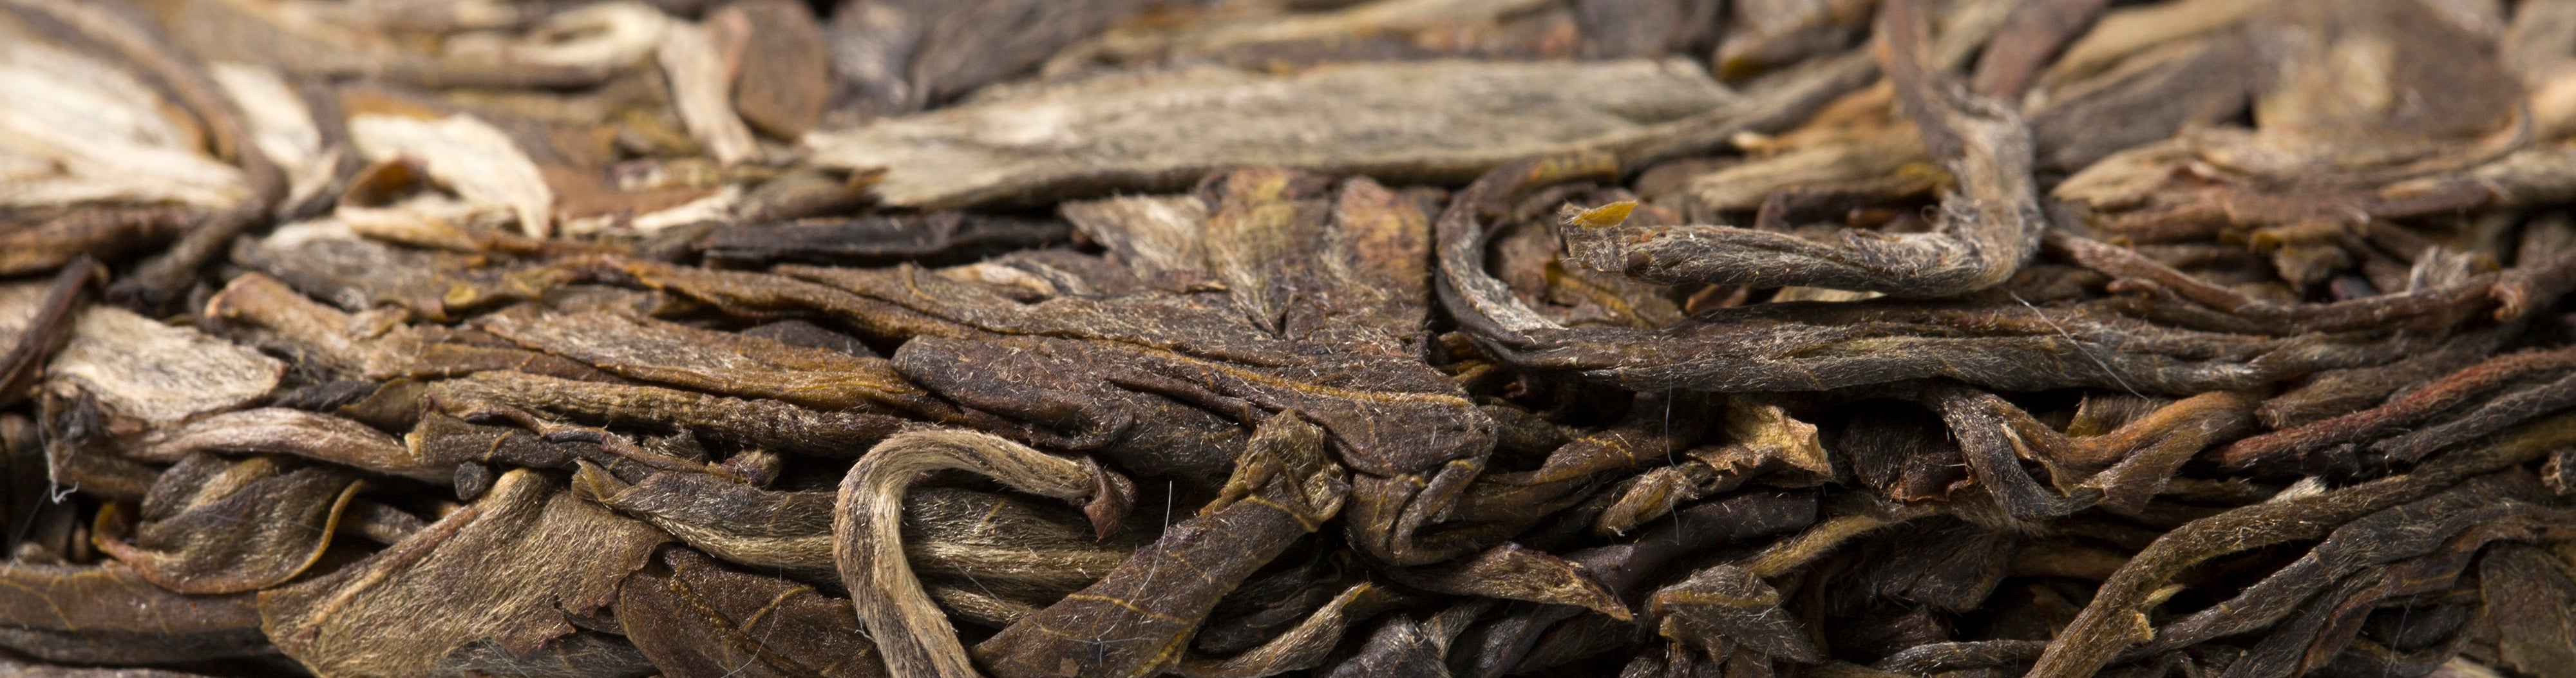 Basic Understanding of Pu erh Tea and Its Benefits